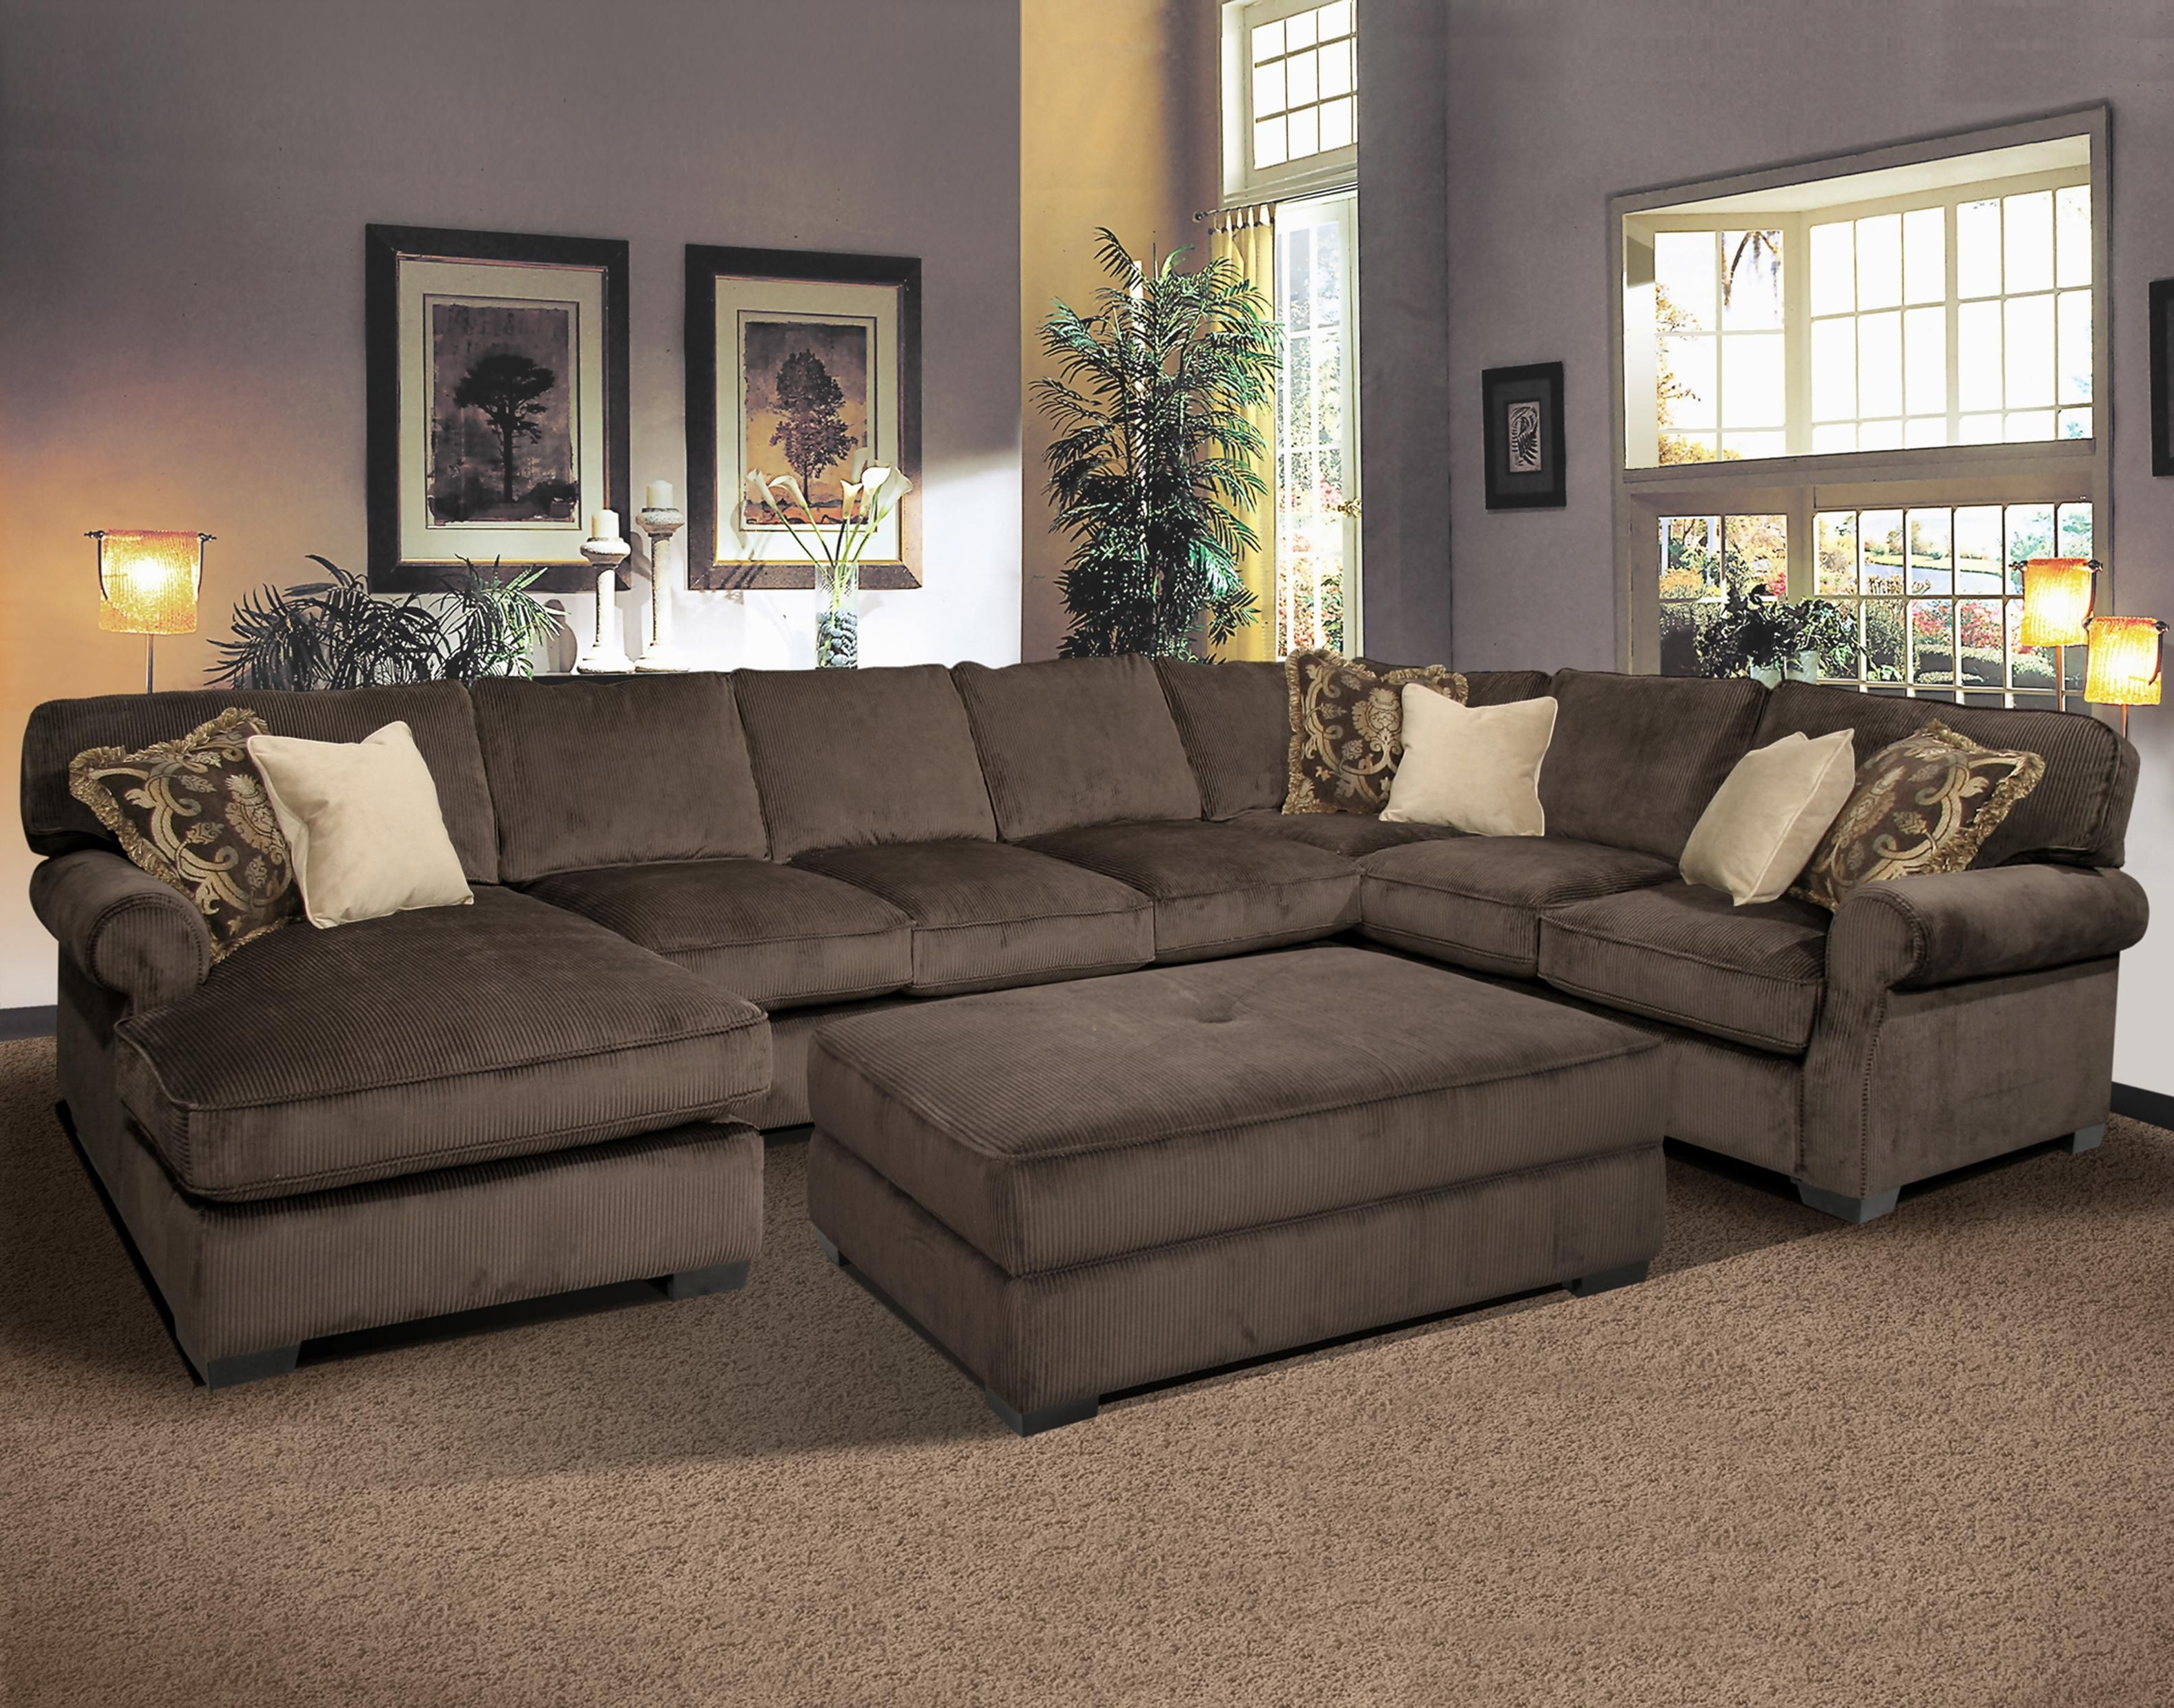 Big And Comfy Grand Island Large, 7 Seat Sectional Sofa With Right Inside Well Known Huge Sofas (View 3 of 20)